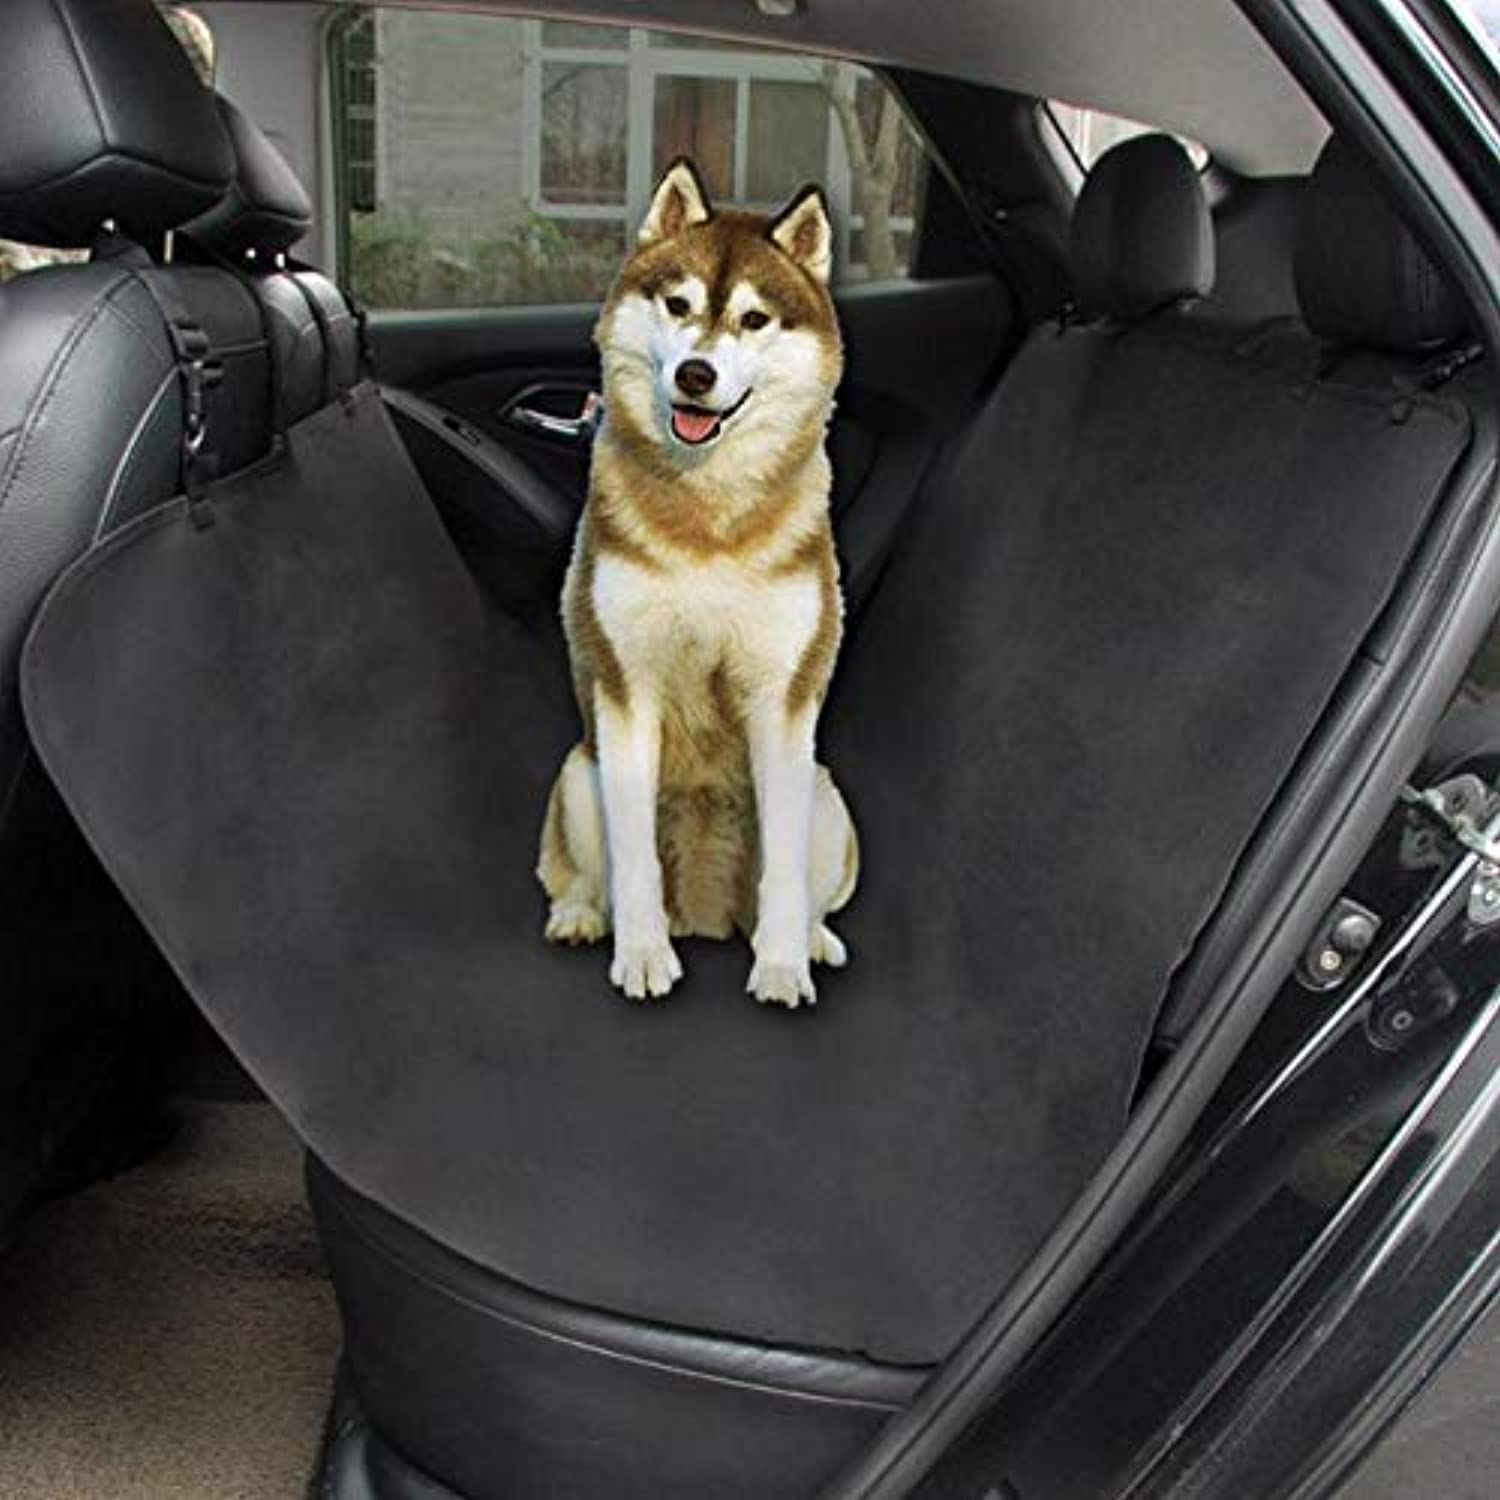 DDVUS  Waterproof Pet Cat Dog Car Rear Back Seat Cover Predector Mat Auto Travel Blanket Hammock Cushion Predector 135x135cm